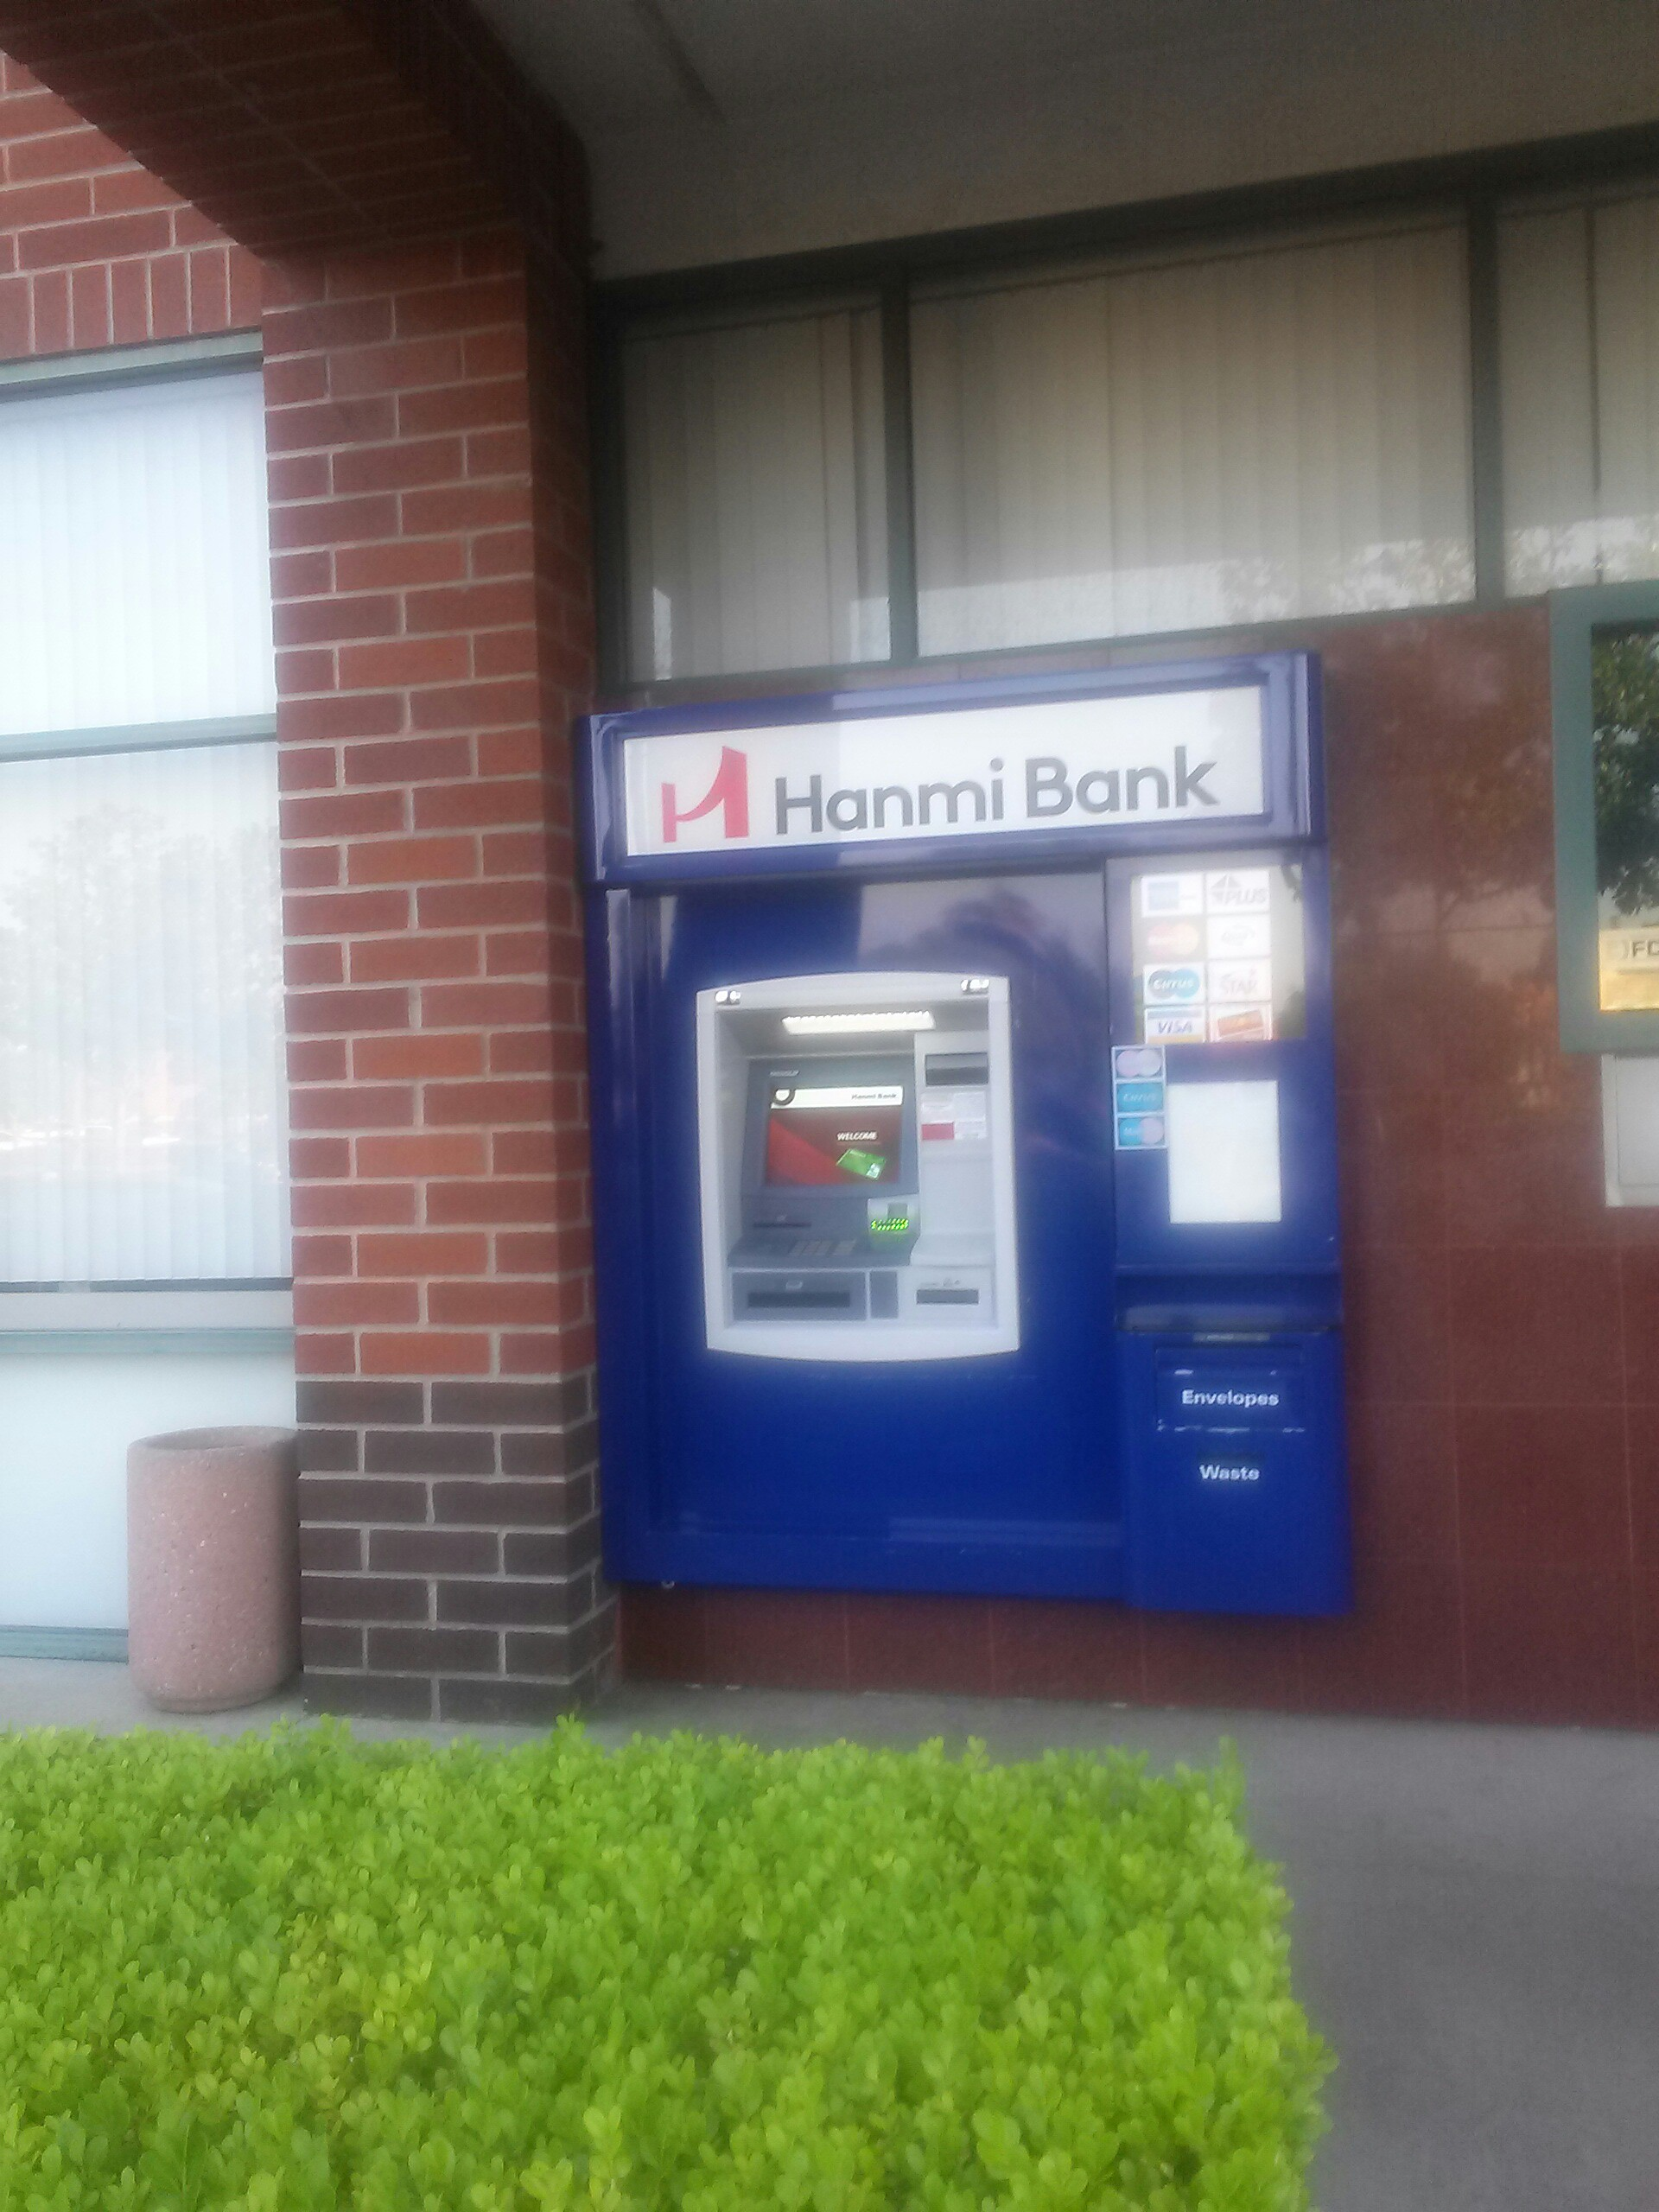 Hanmi Bank 11900 South St Ste 109, Cerritos, CA 90703 - YP com